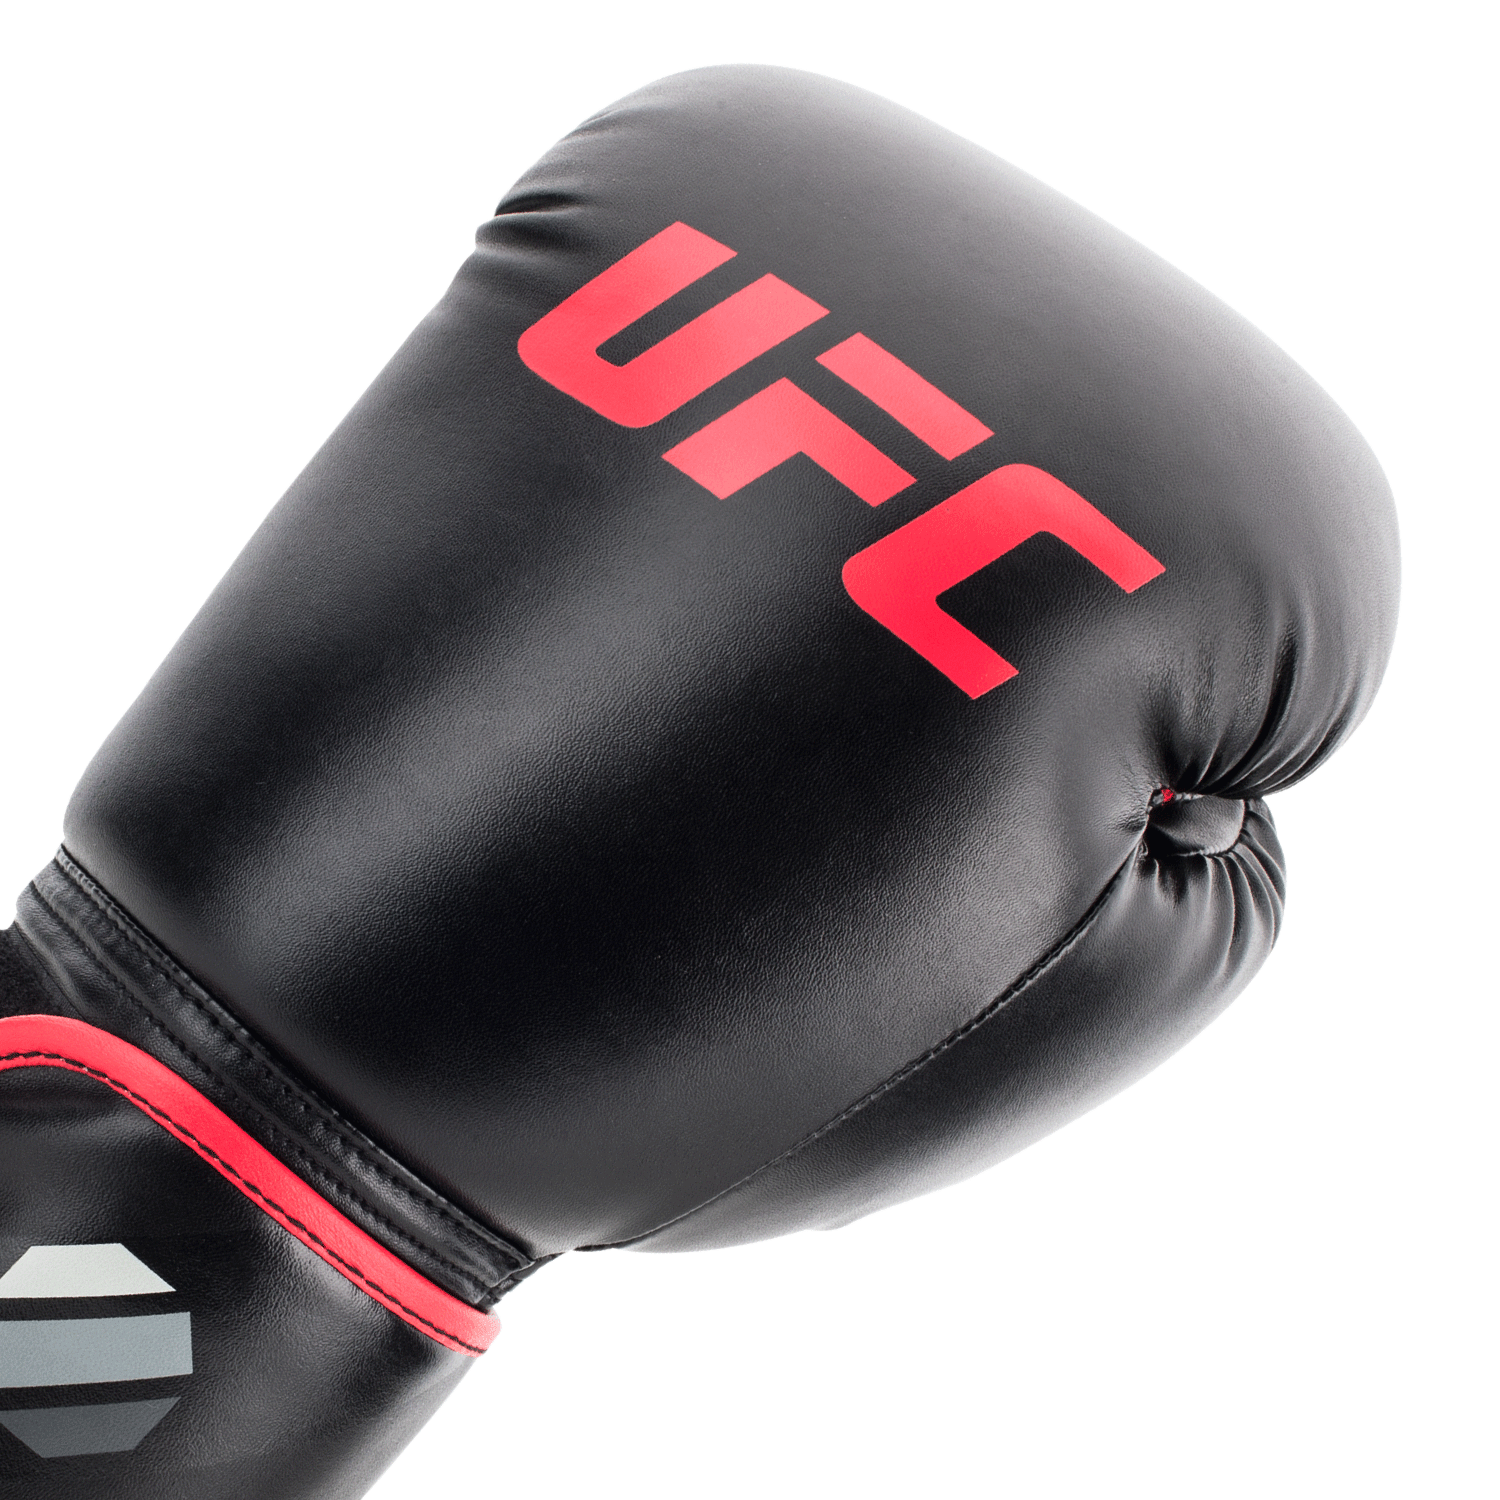 Muay-Thai-Style-Training-Gloves_bk-0.png